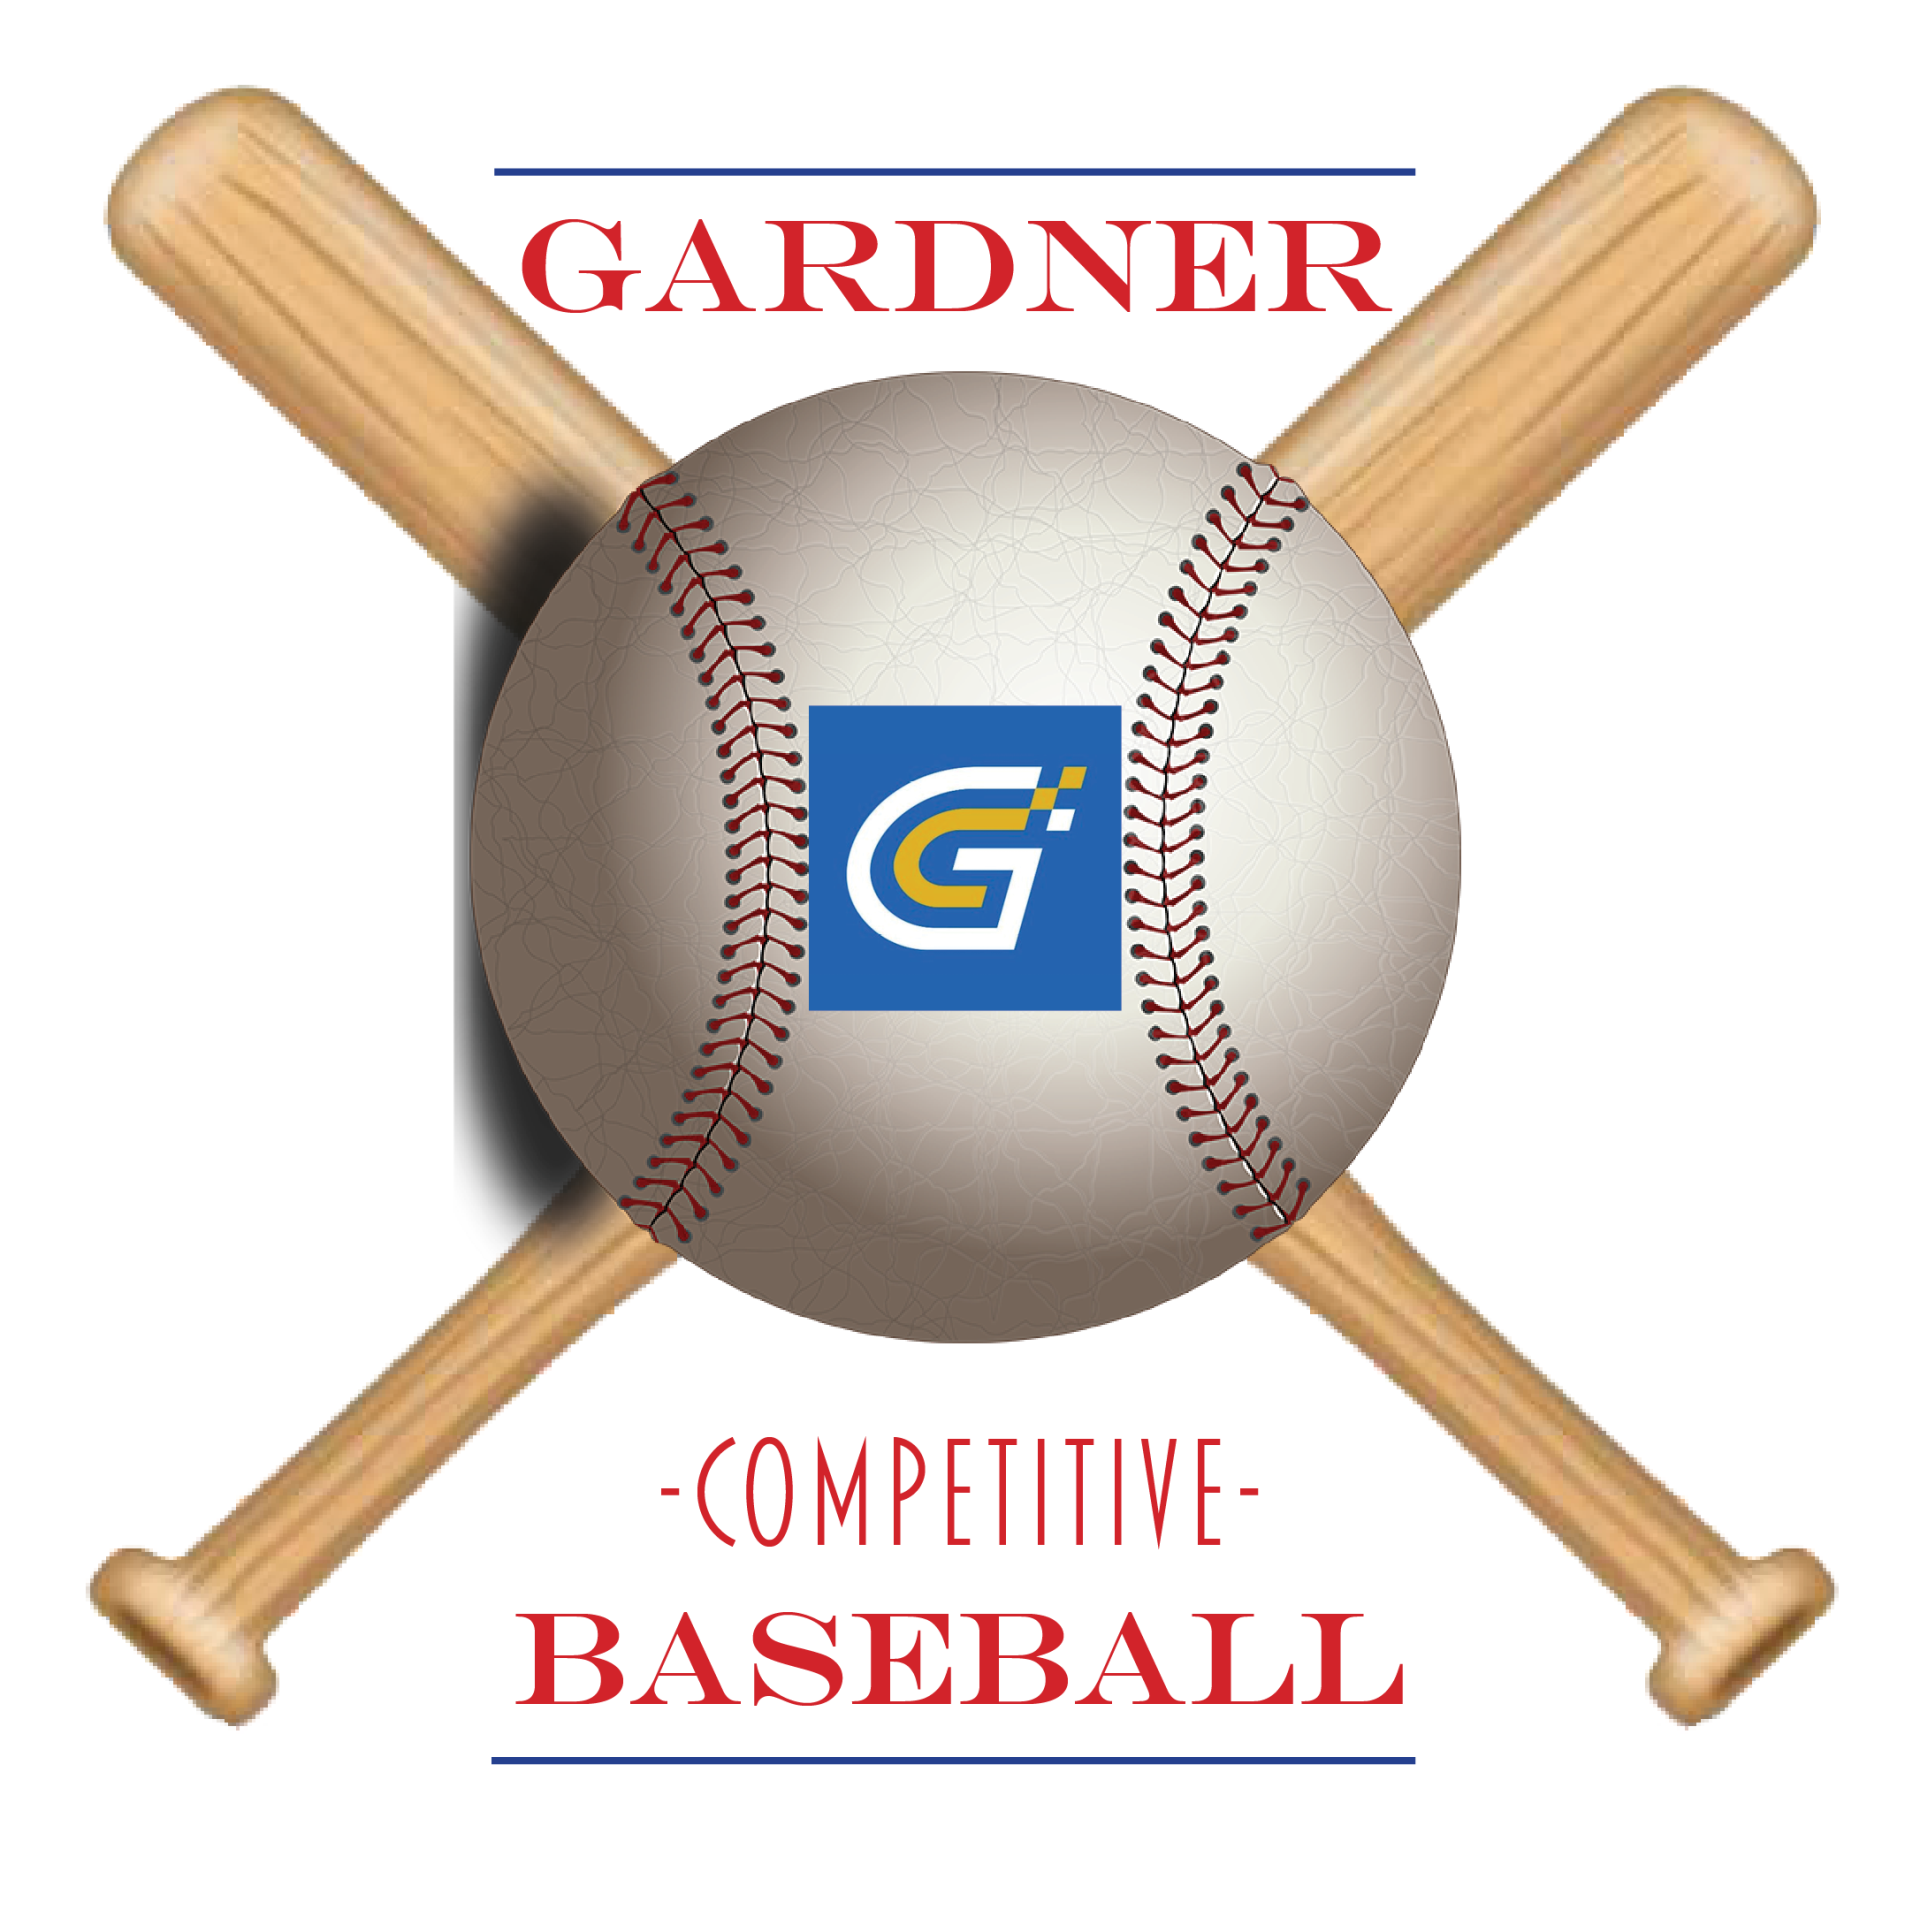 competitive baseball logo 012218 export cropped